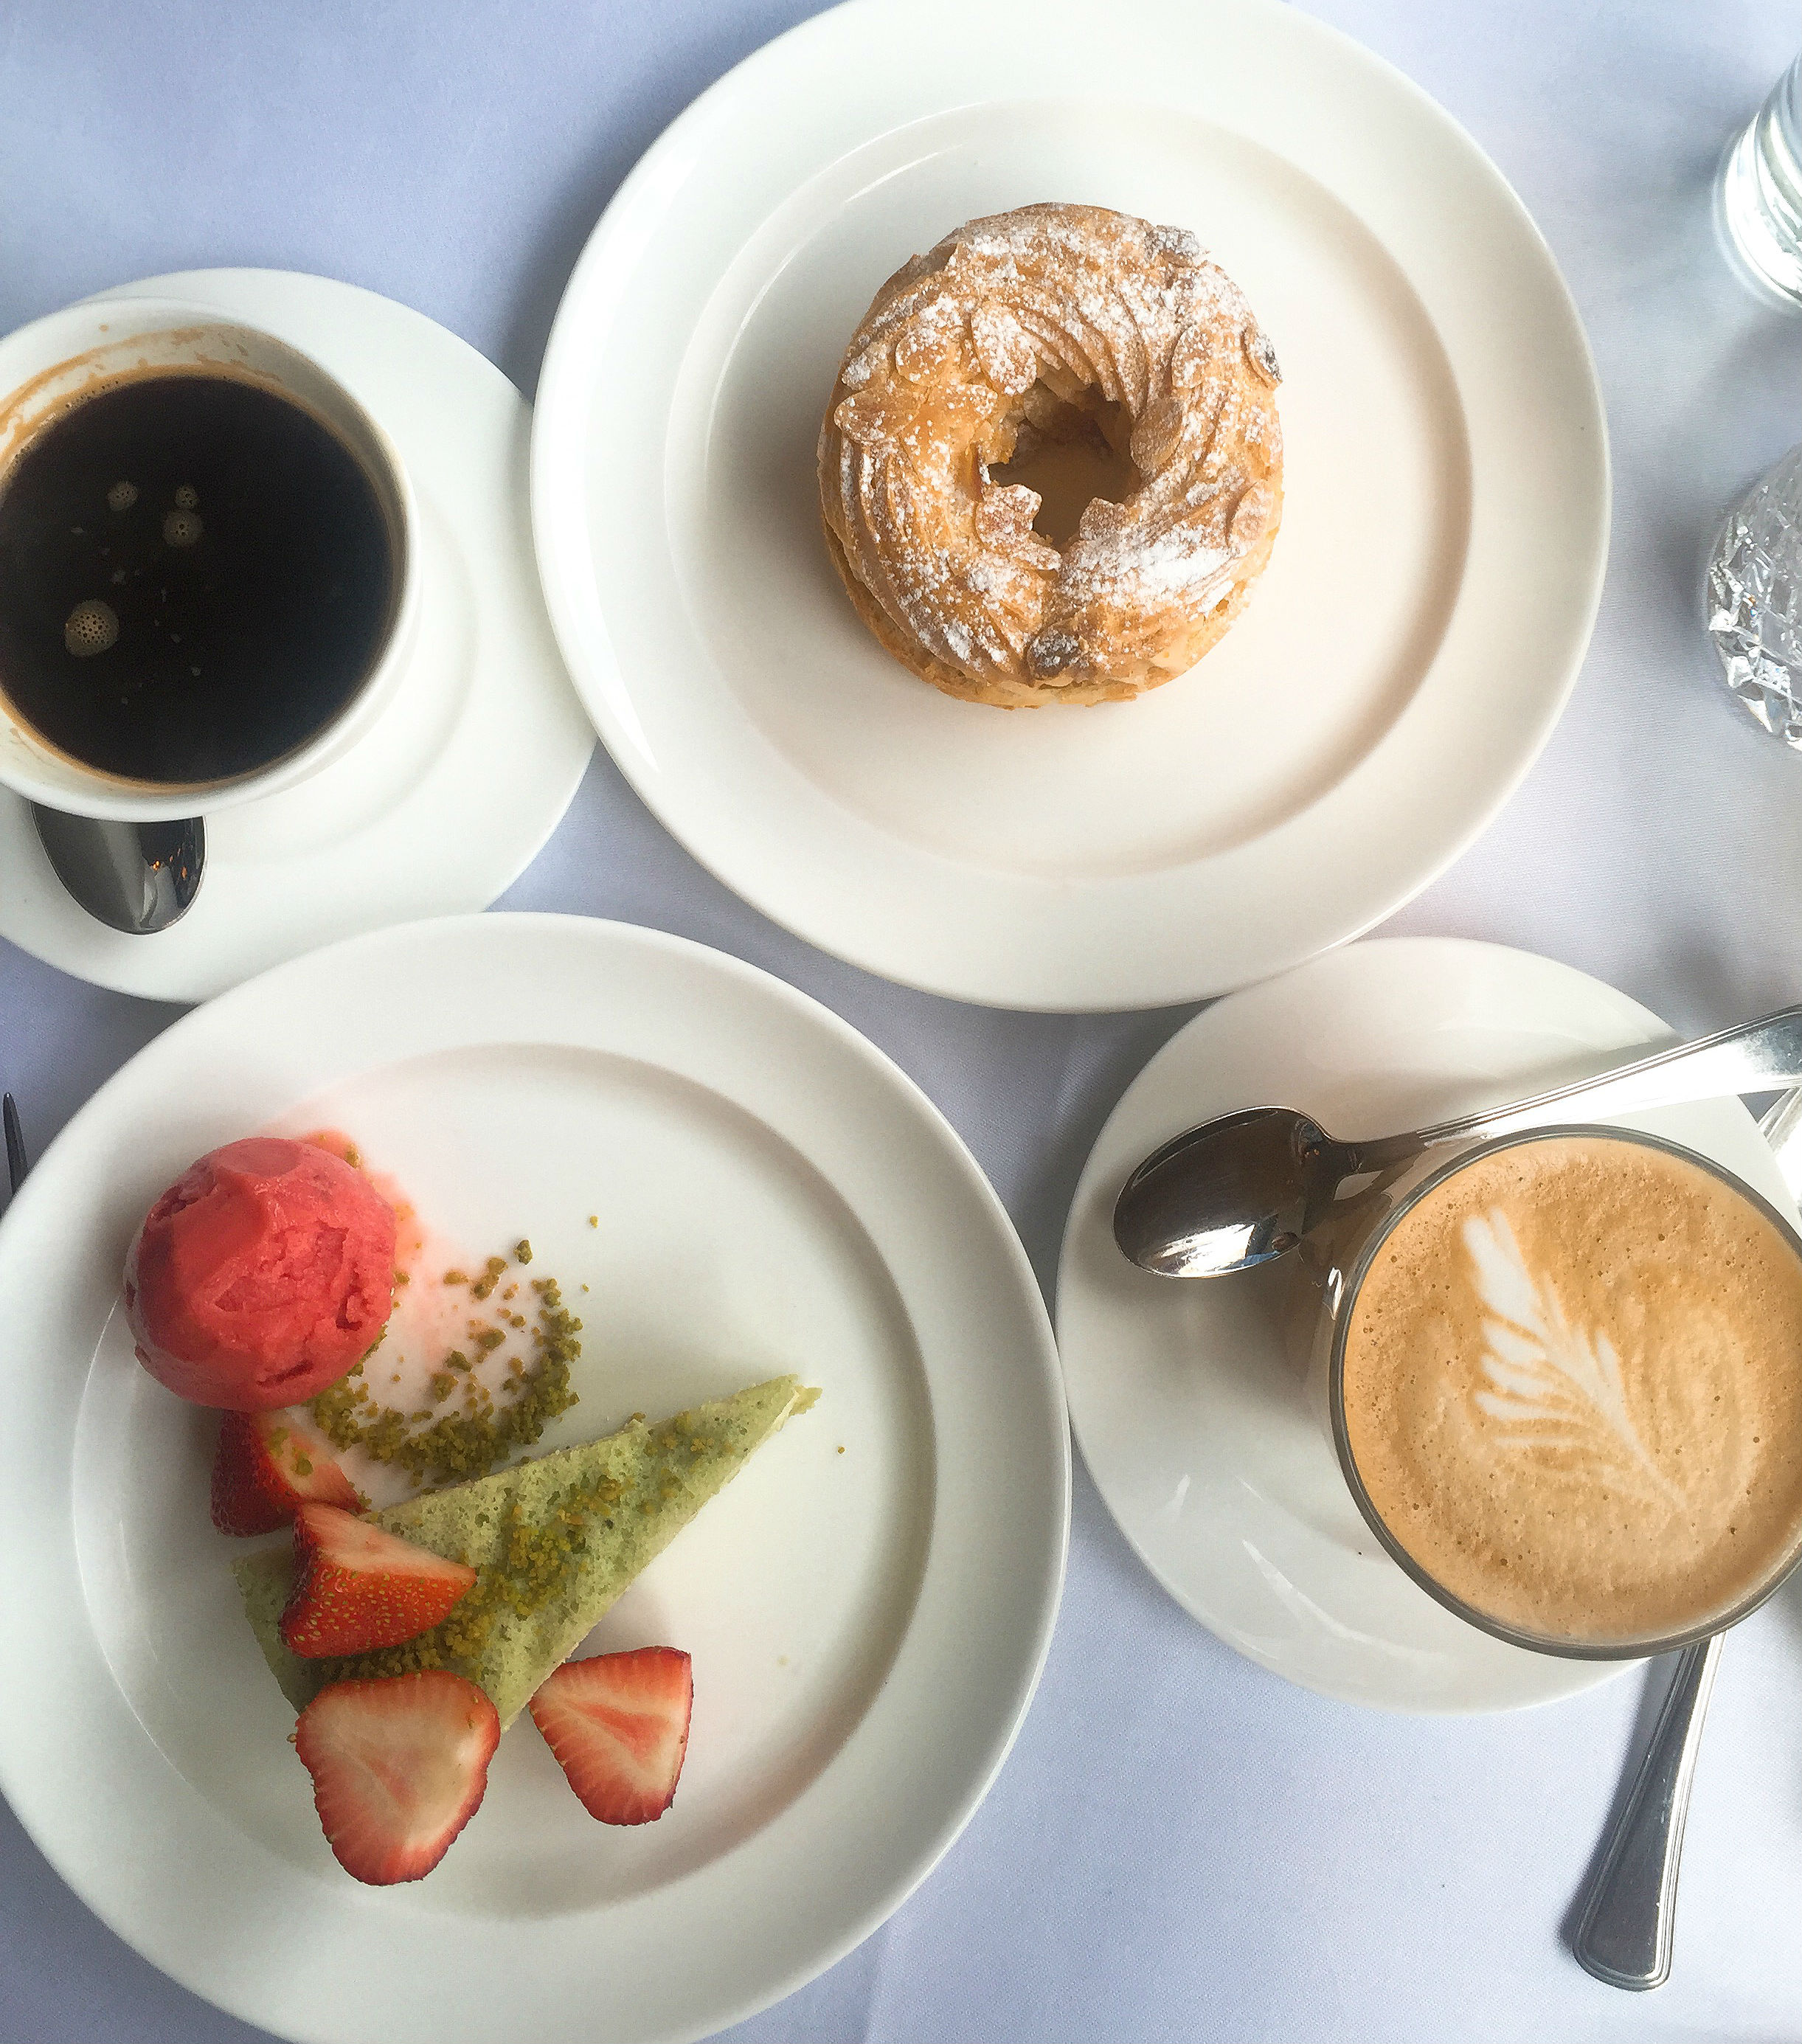 Dessert and coffee - Cafe Monico review